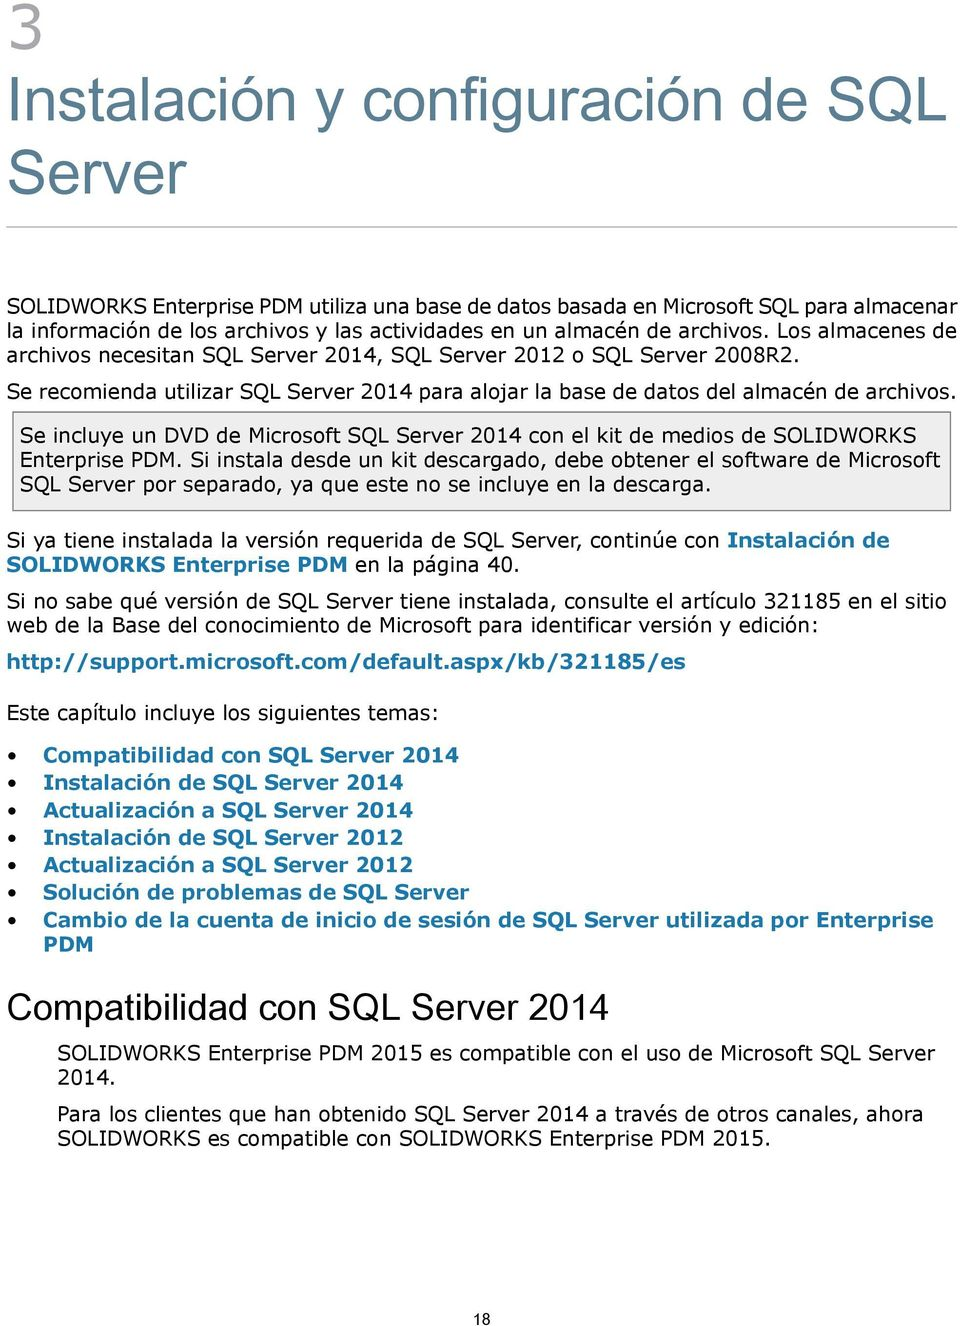 Se incluye un DVD de Microsoft SQL Server 2014 con el kit de medios de SOLIDWORKS Enterprise PDM.